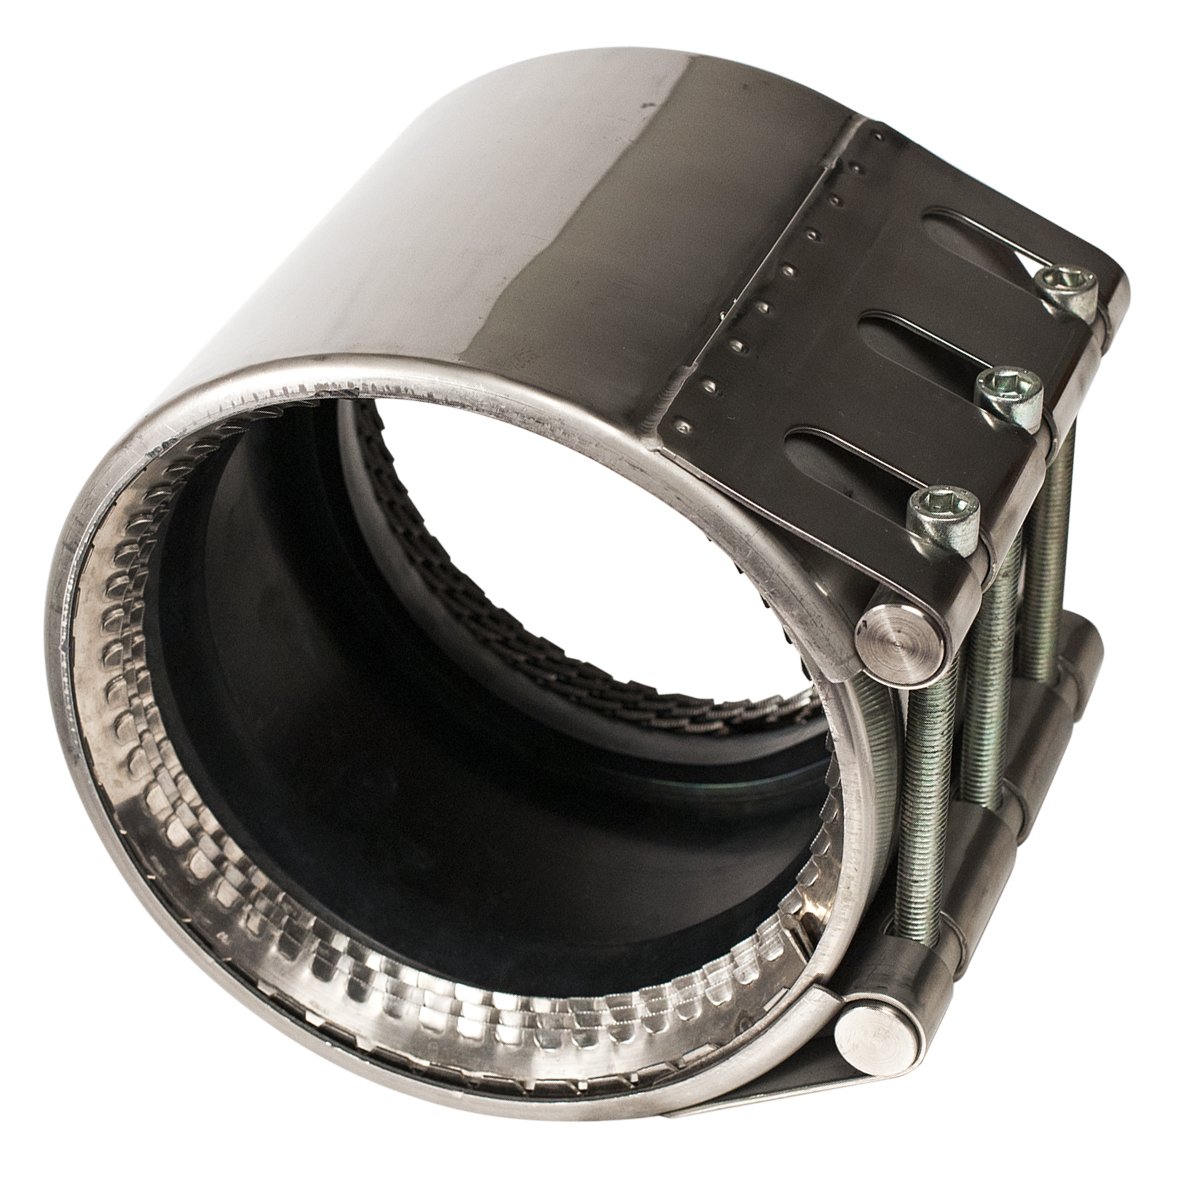 ARMOR LOCK - Stainless steel restraint coupling